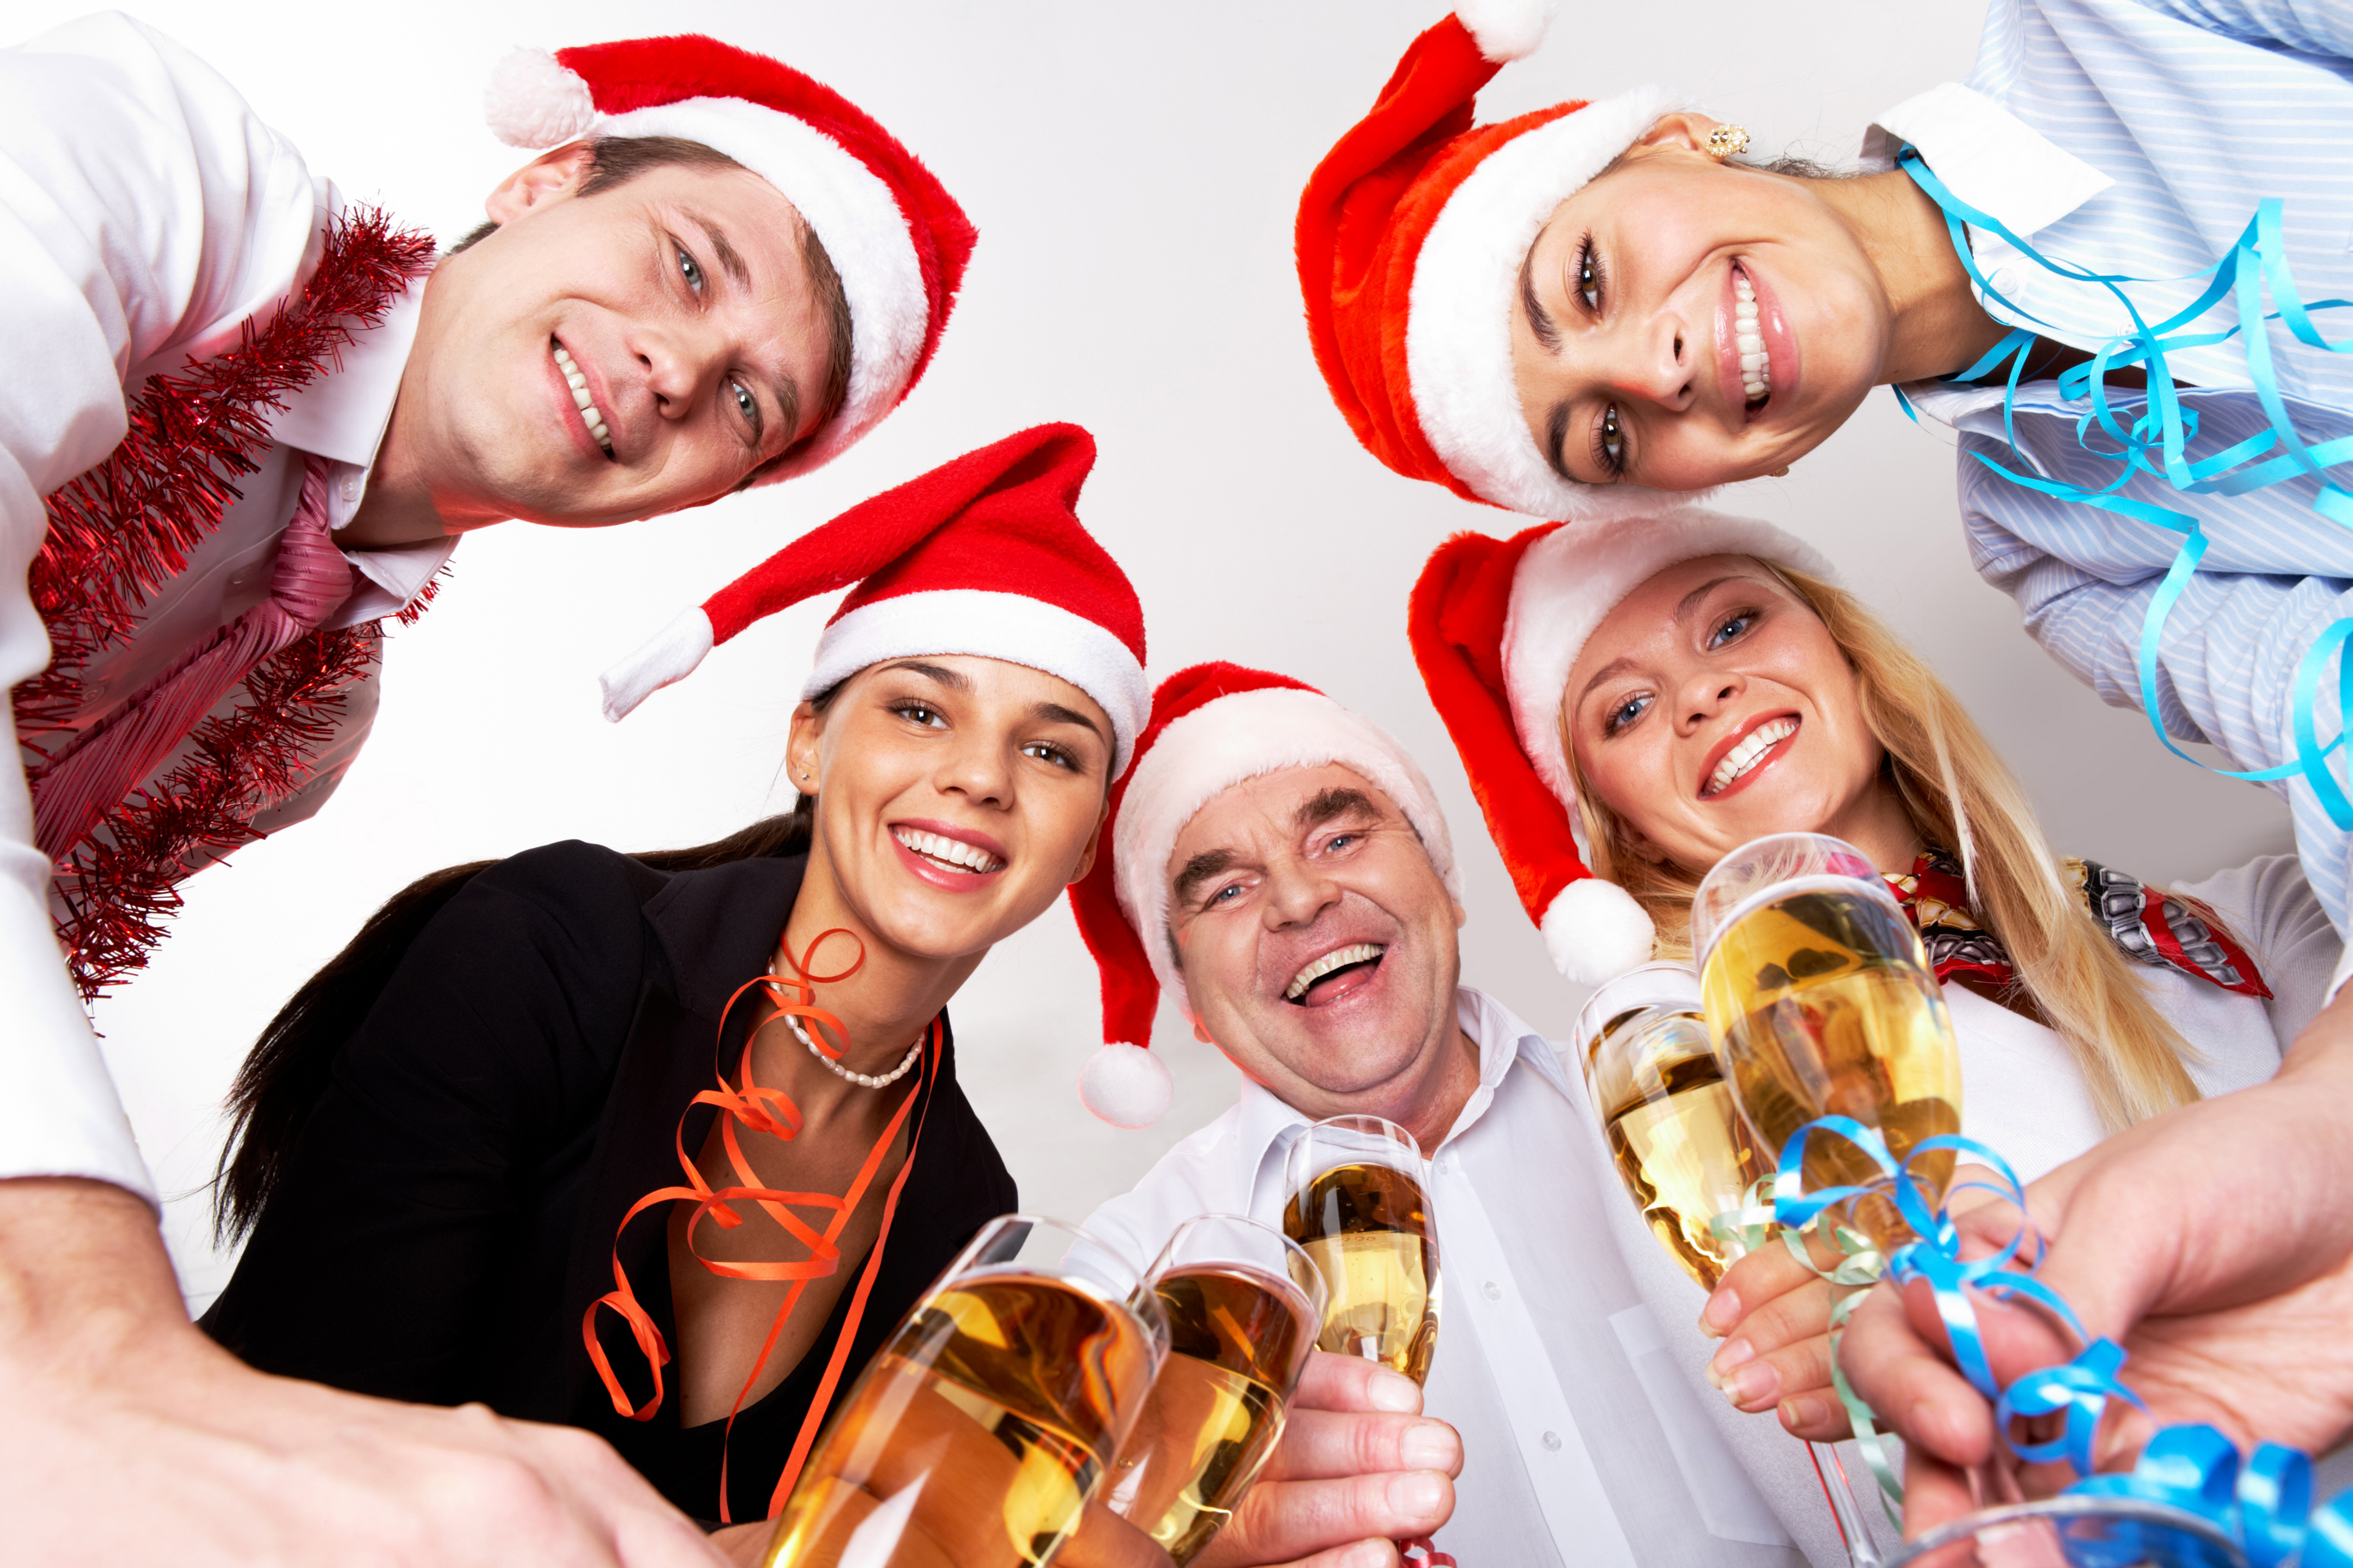 5 Ways to Use the Holiday Season to Build Your Business